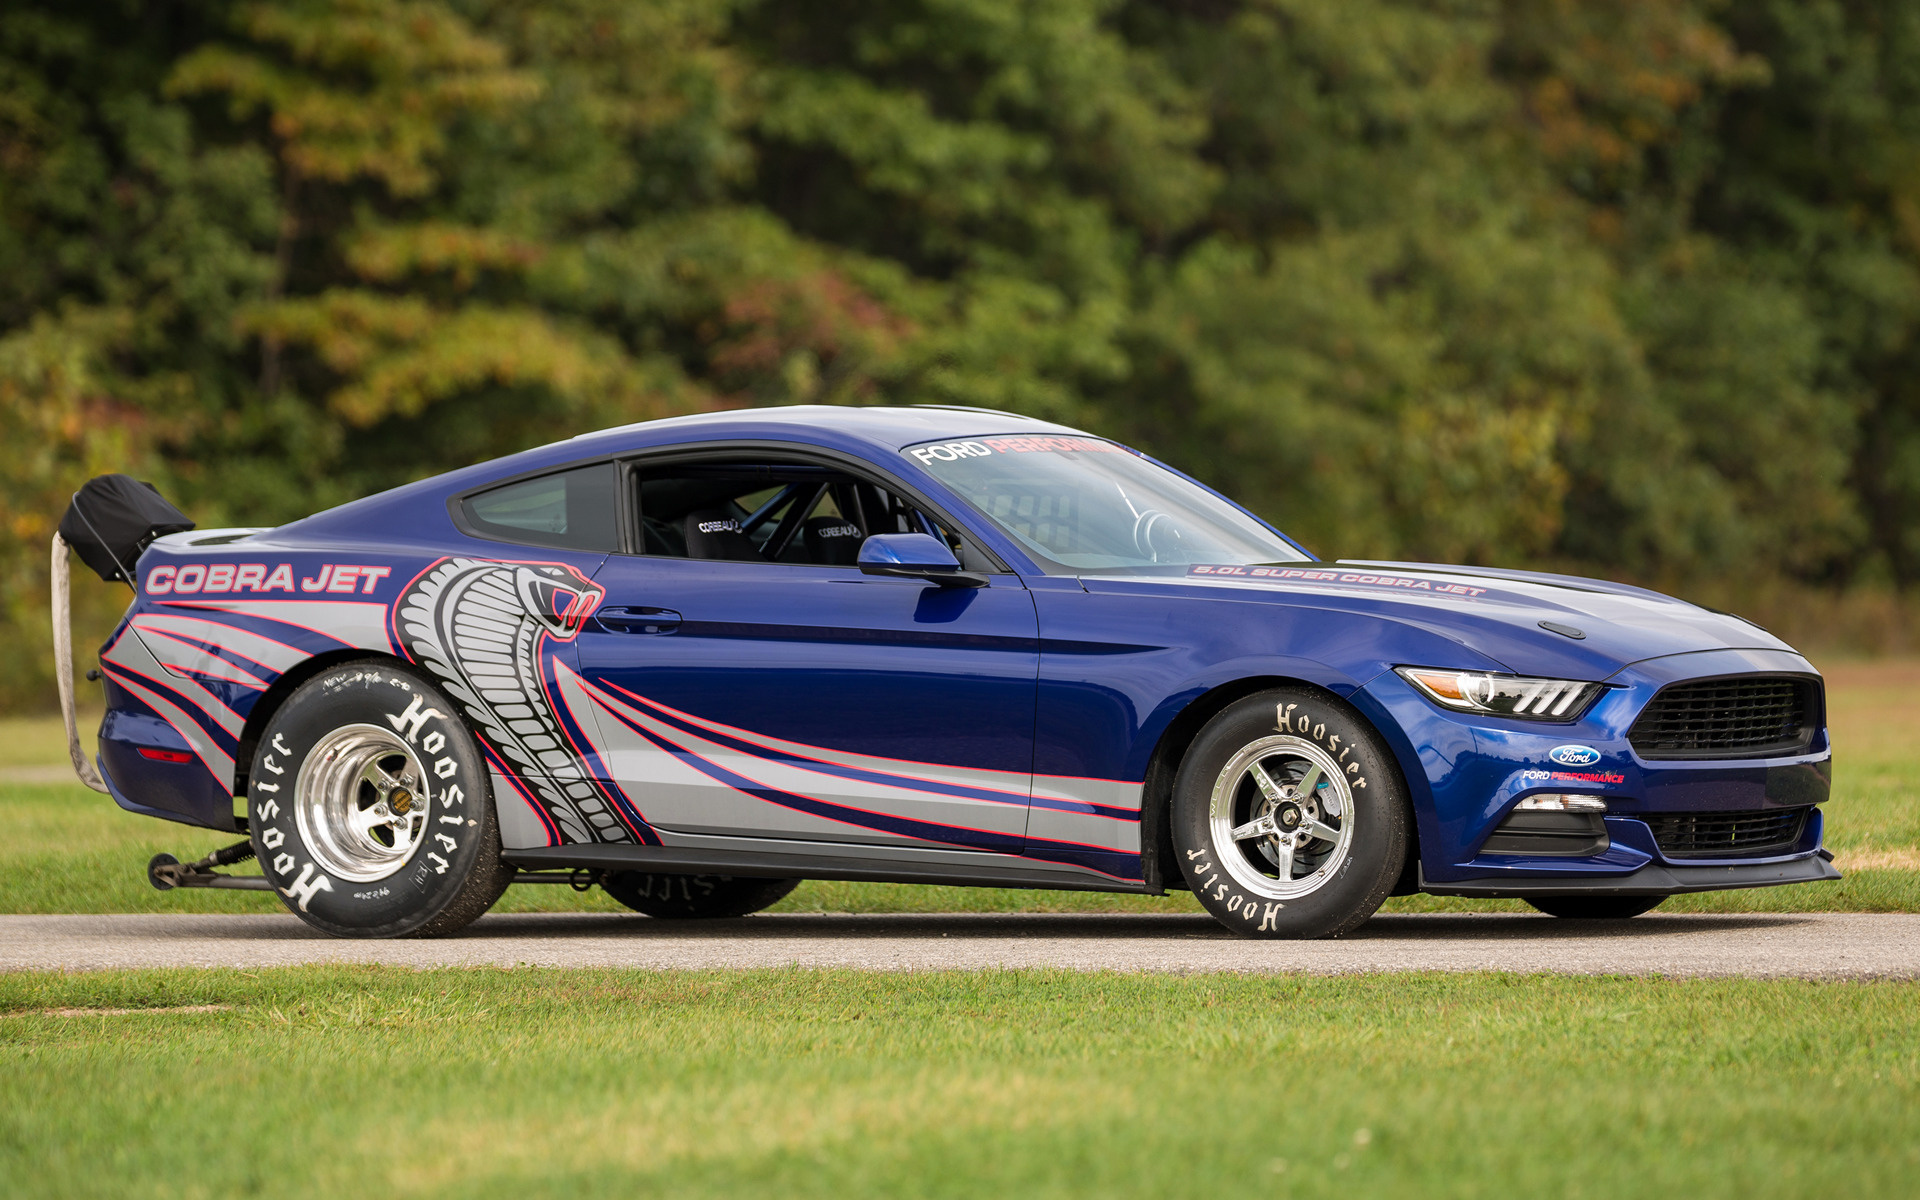 2016 Ford Mustang Cobra Jet Drag Car Wallpapers And Hd